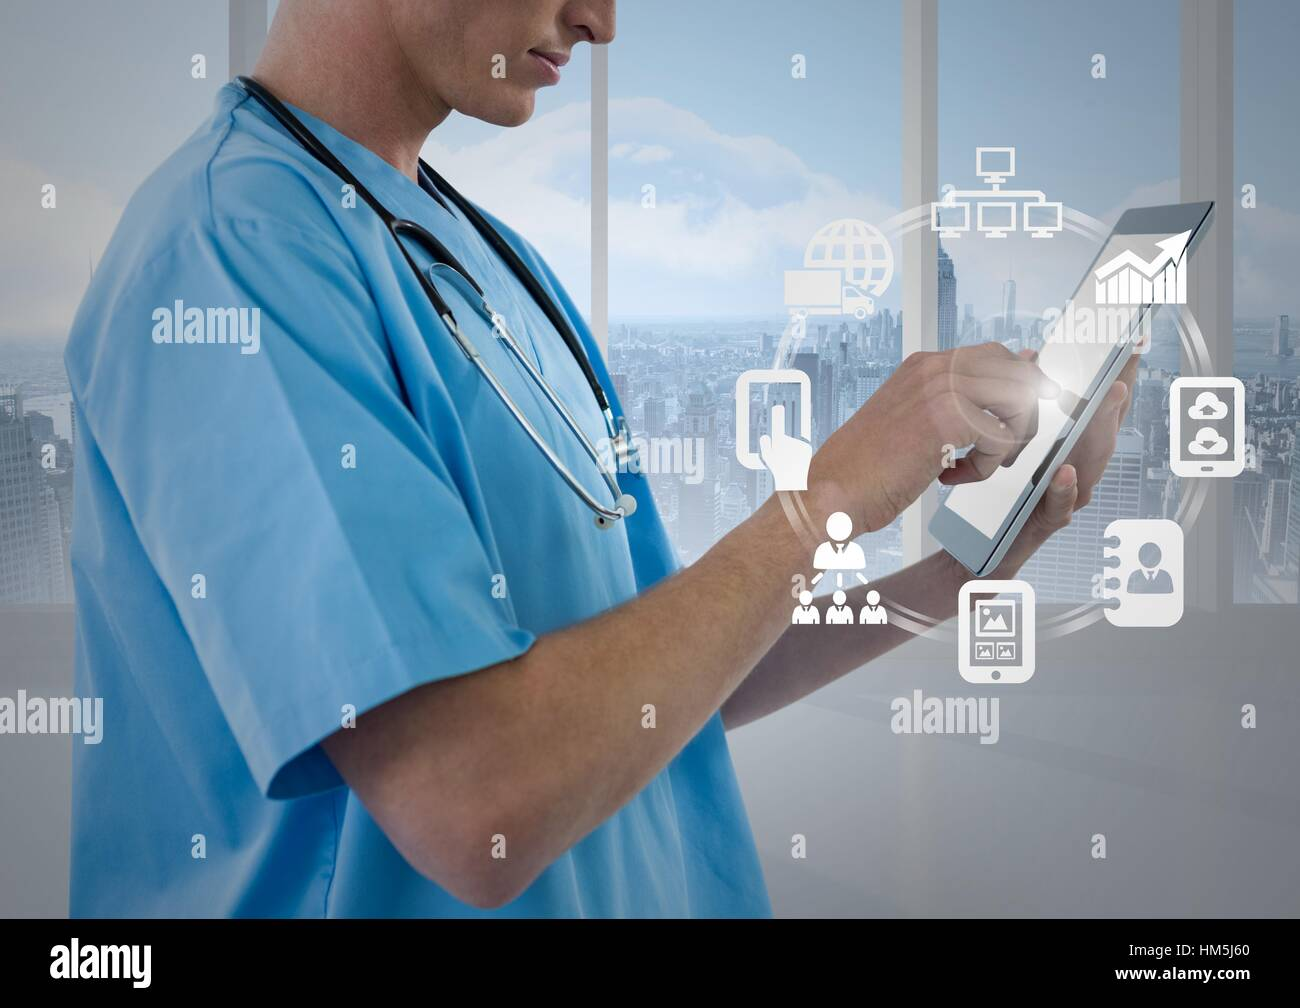 Male nurse using digital tablet with app icon interface screen - Stock Image